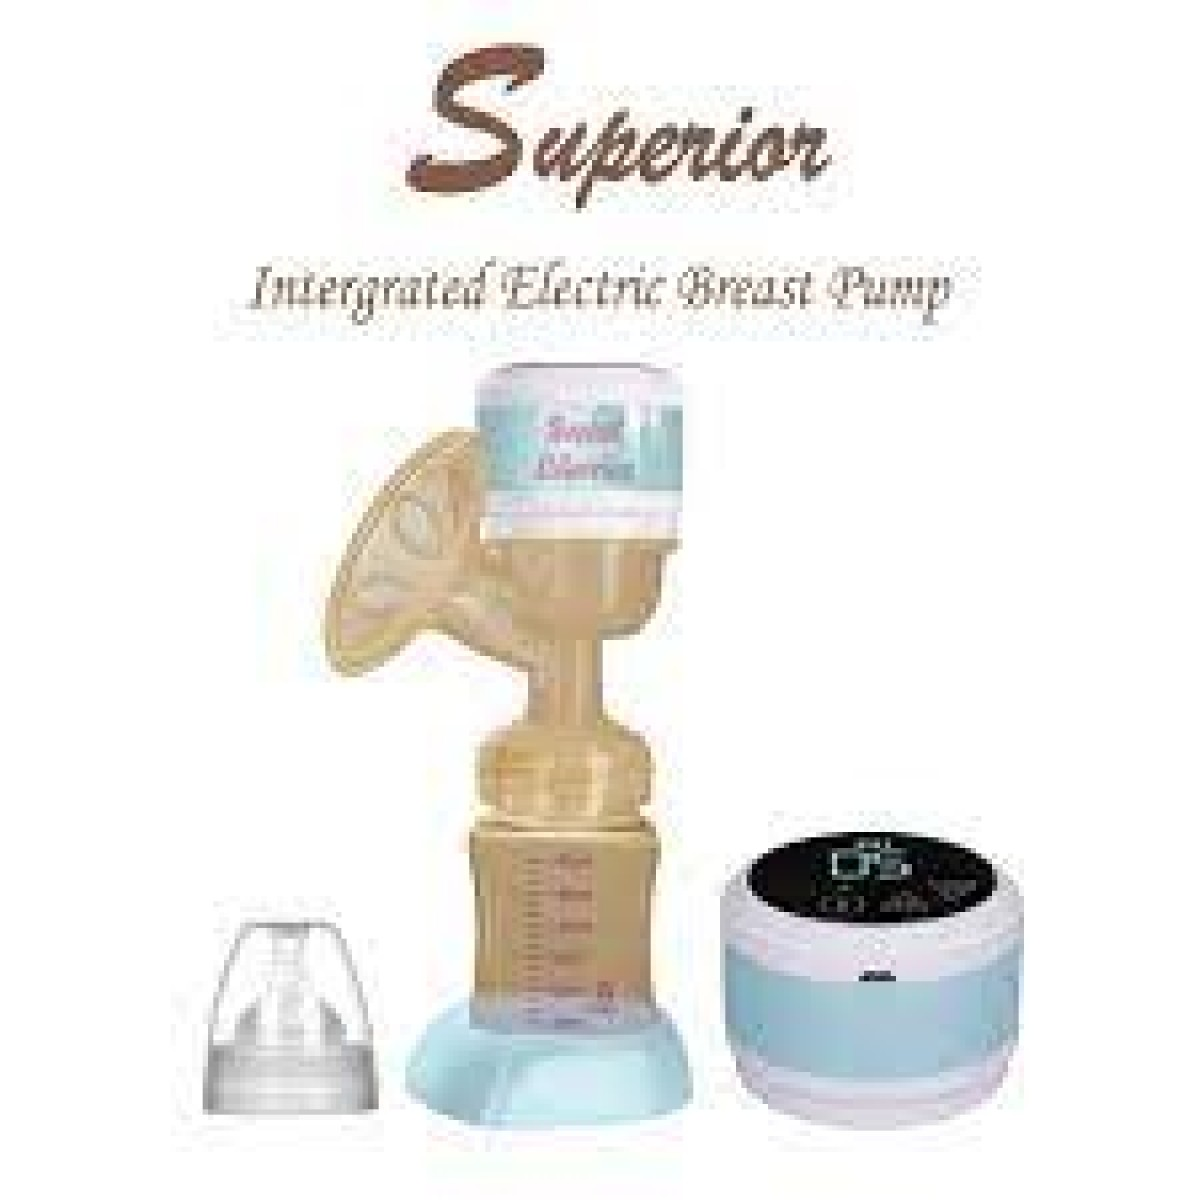 SUPERIOR INTEGRATED ELECTRIC BREAST PUMP - Kico Baby Center